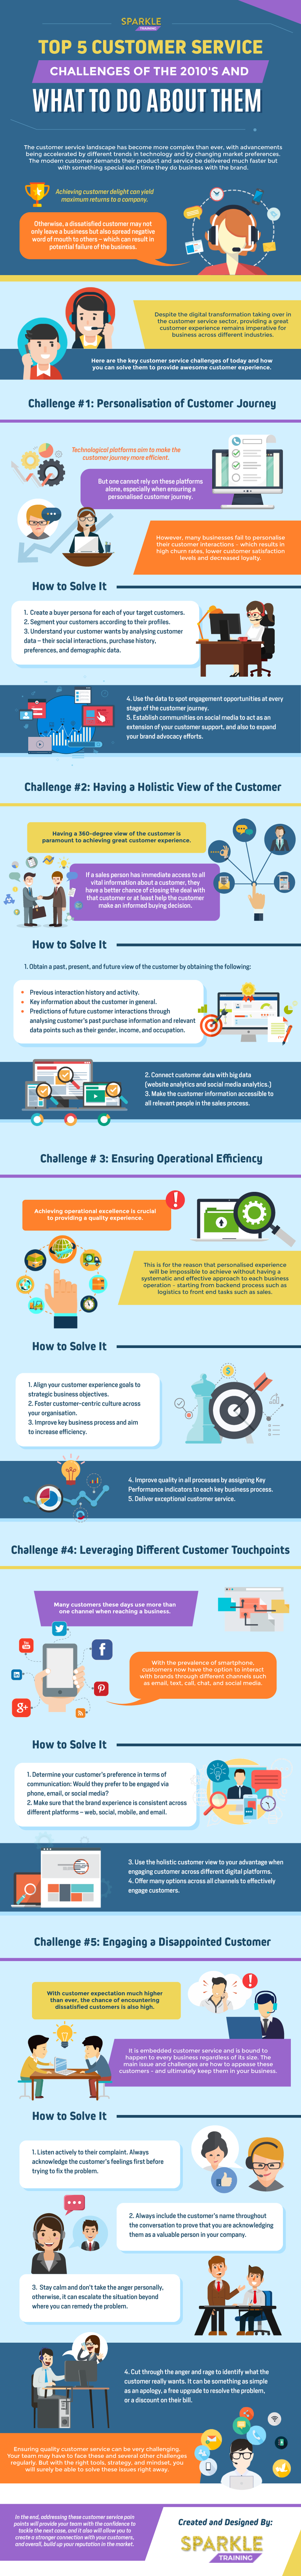 Customer Service Challenges in the Digital Era - Infographic